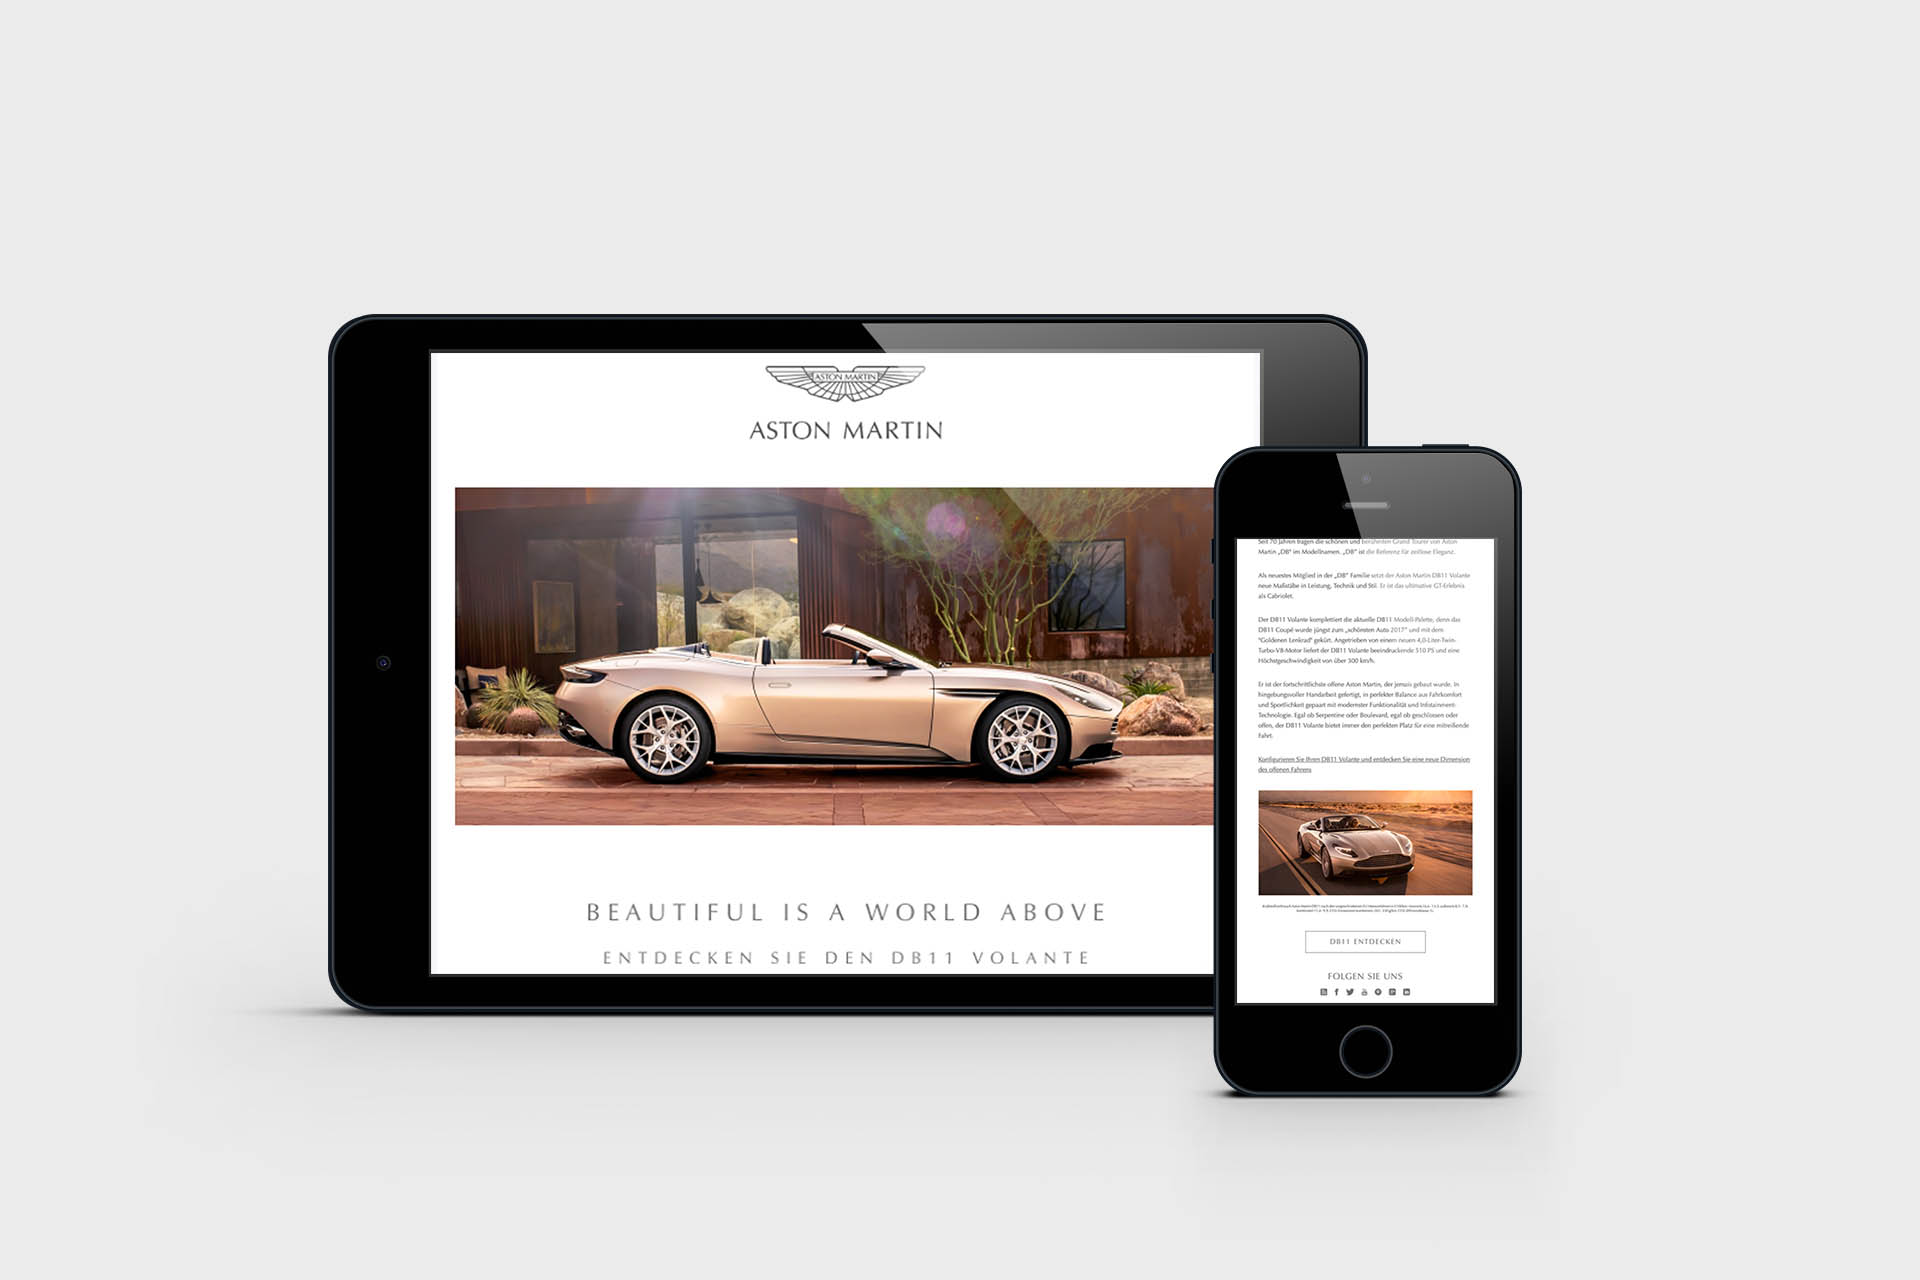 https://www.performance-werk.de/wp-content/uploads/2019/03/mockup_astonmartin.jpg